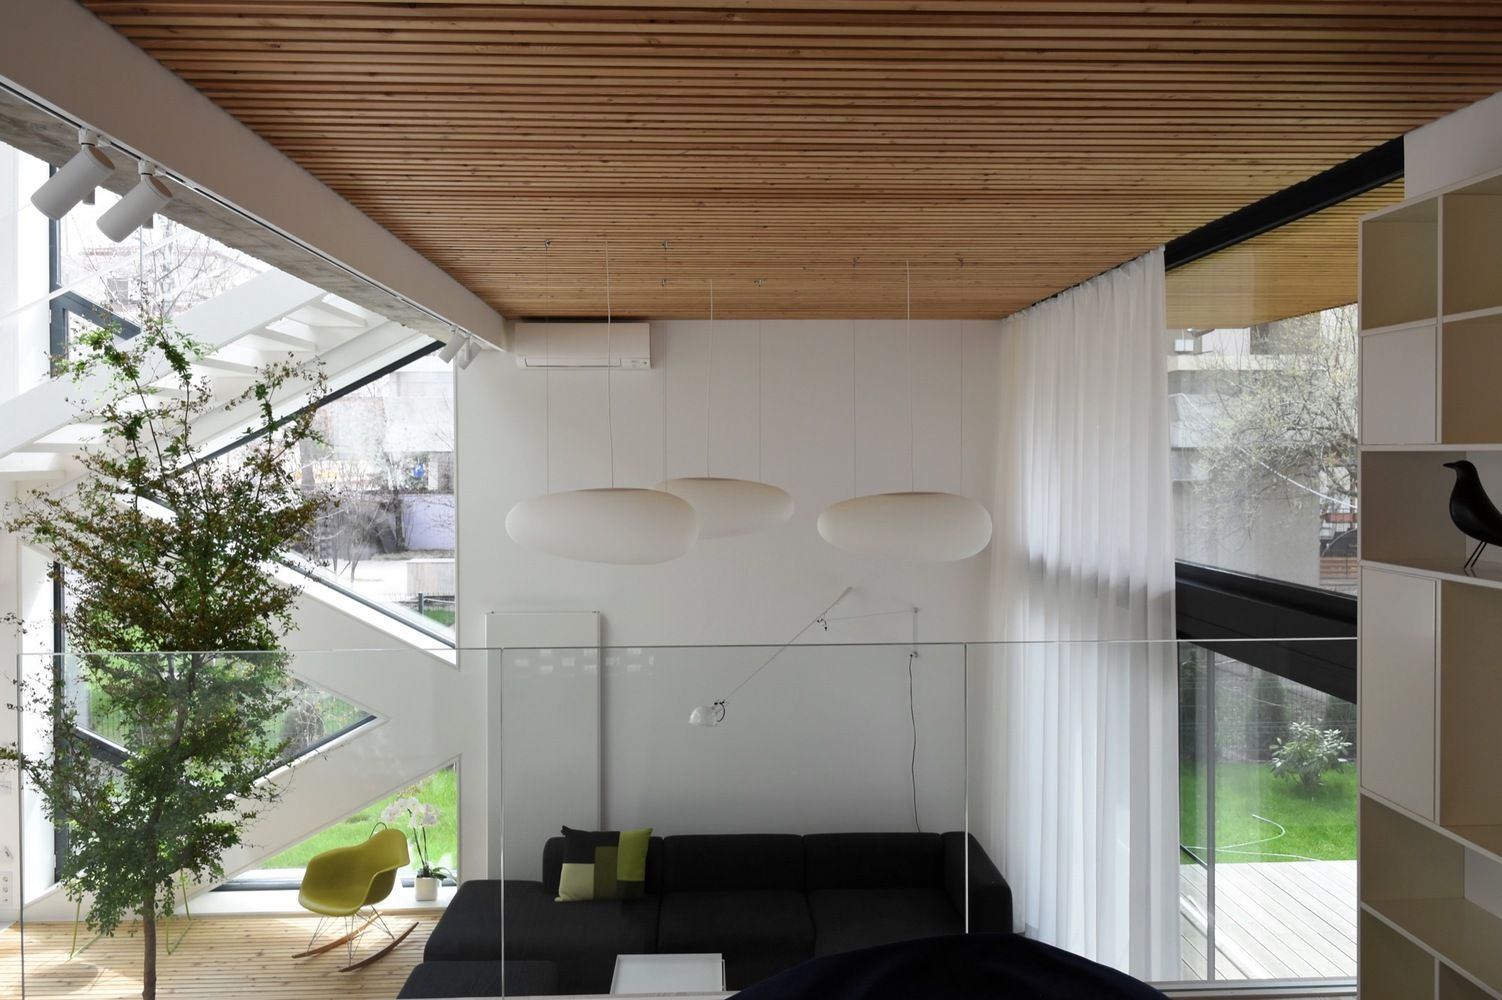 Gallery of Single family House - Tolstoi str. / Outline Architecture Office - 25